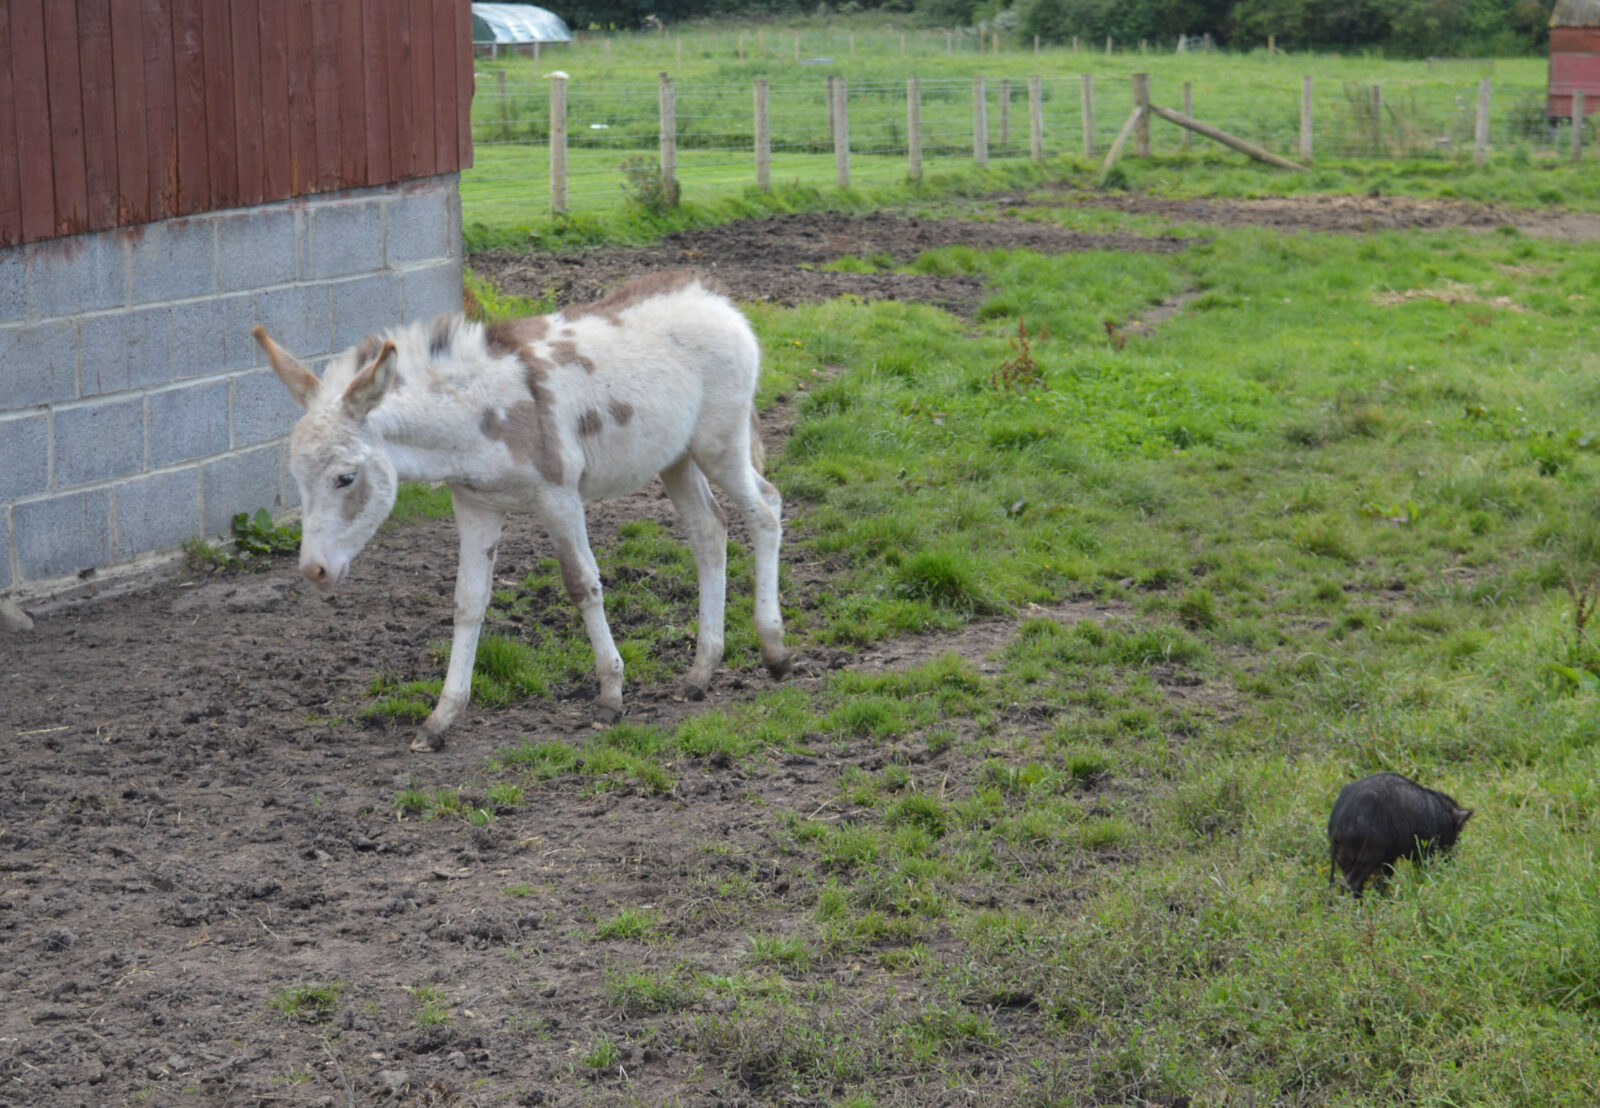 A white donkey with brown spots in a field with a black piglet beside it